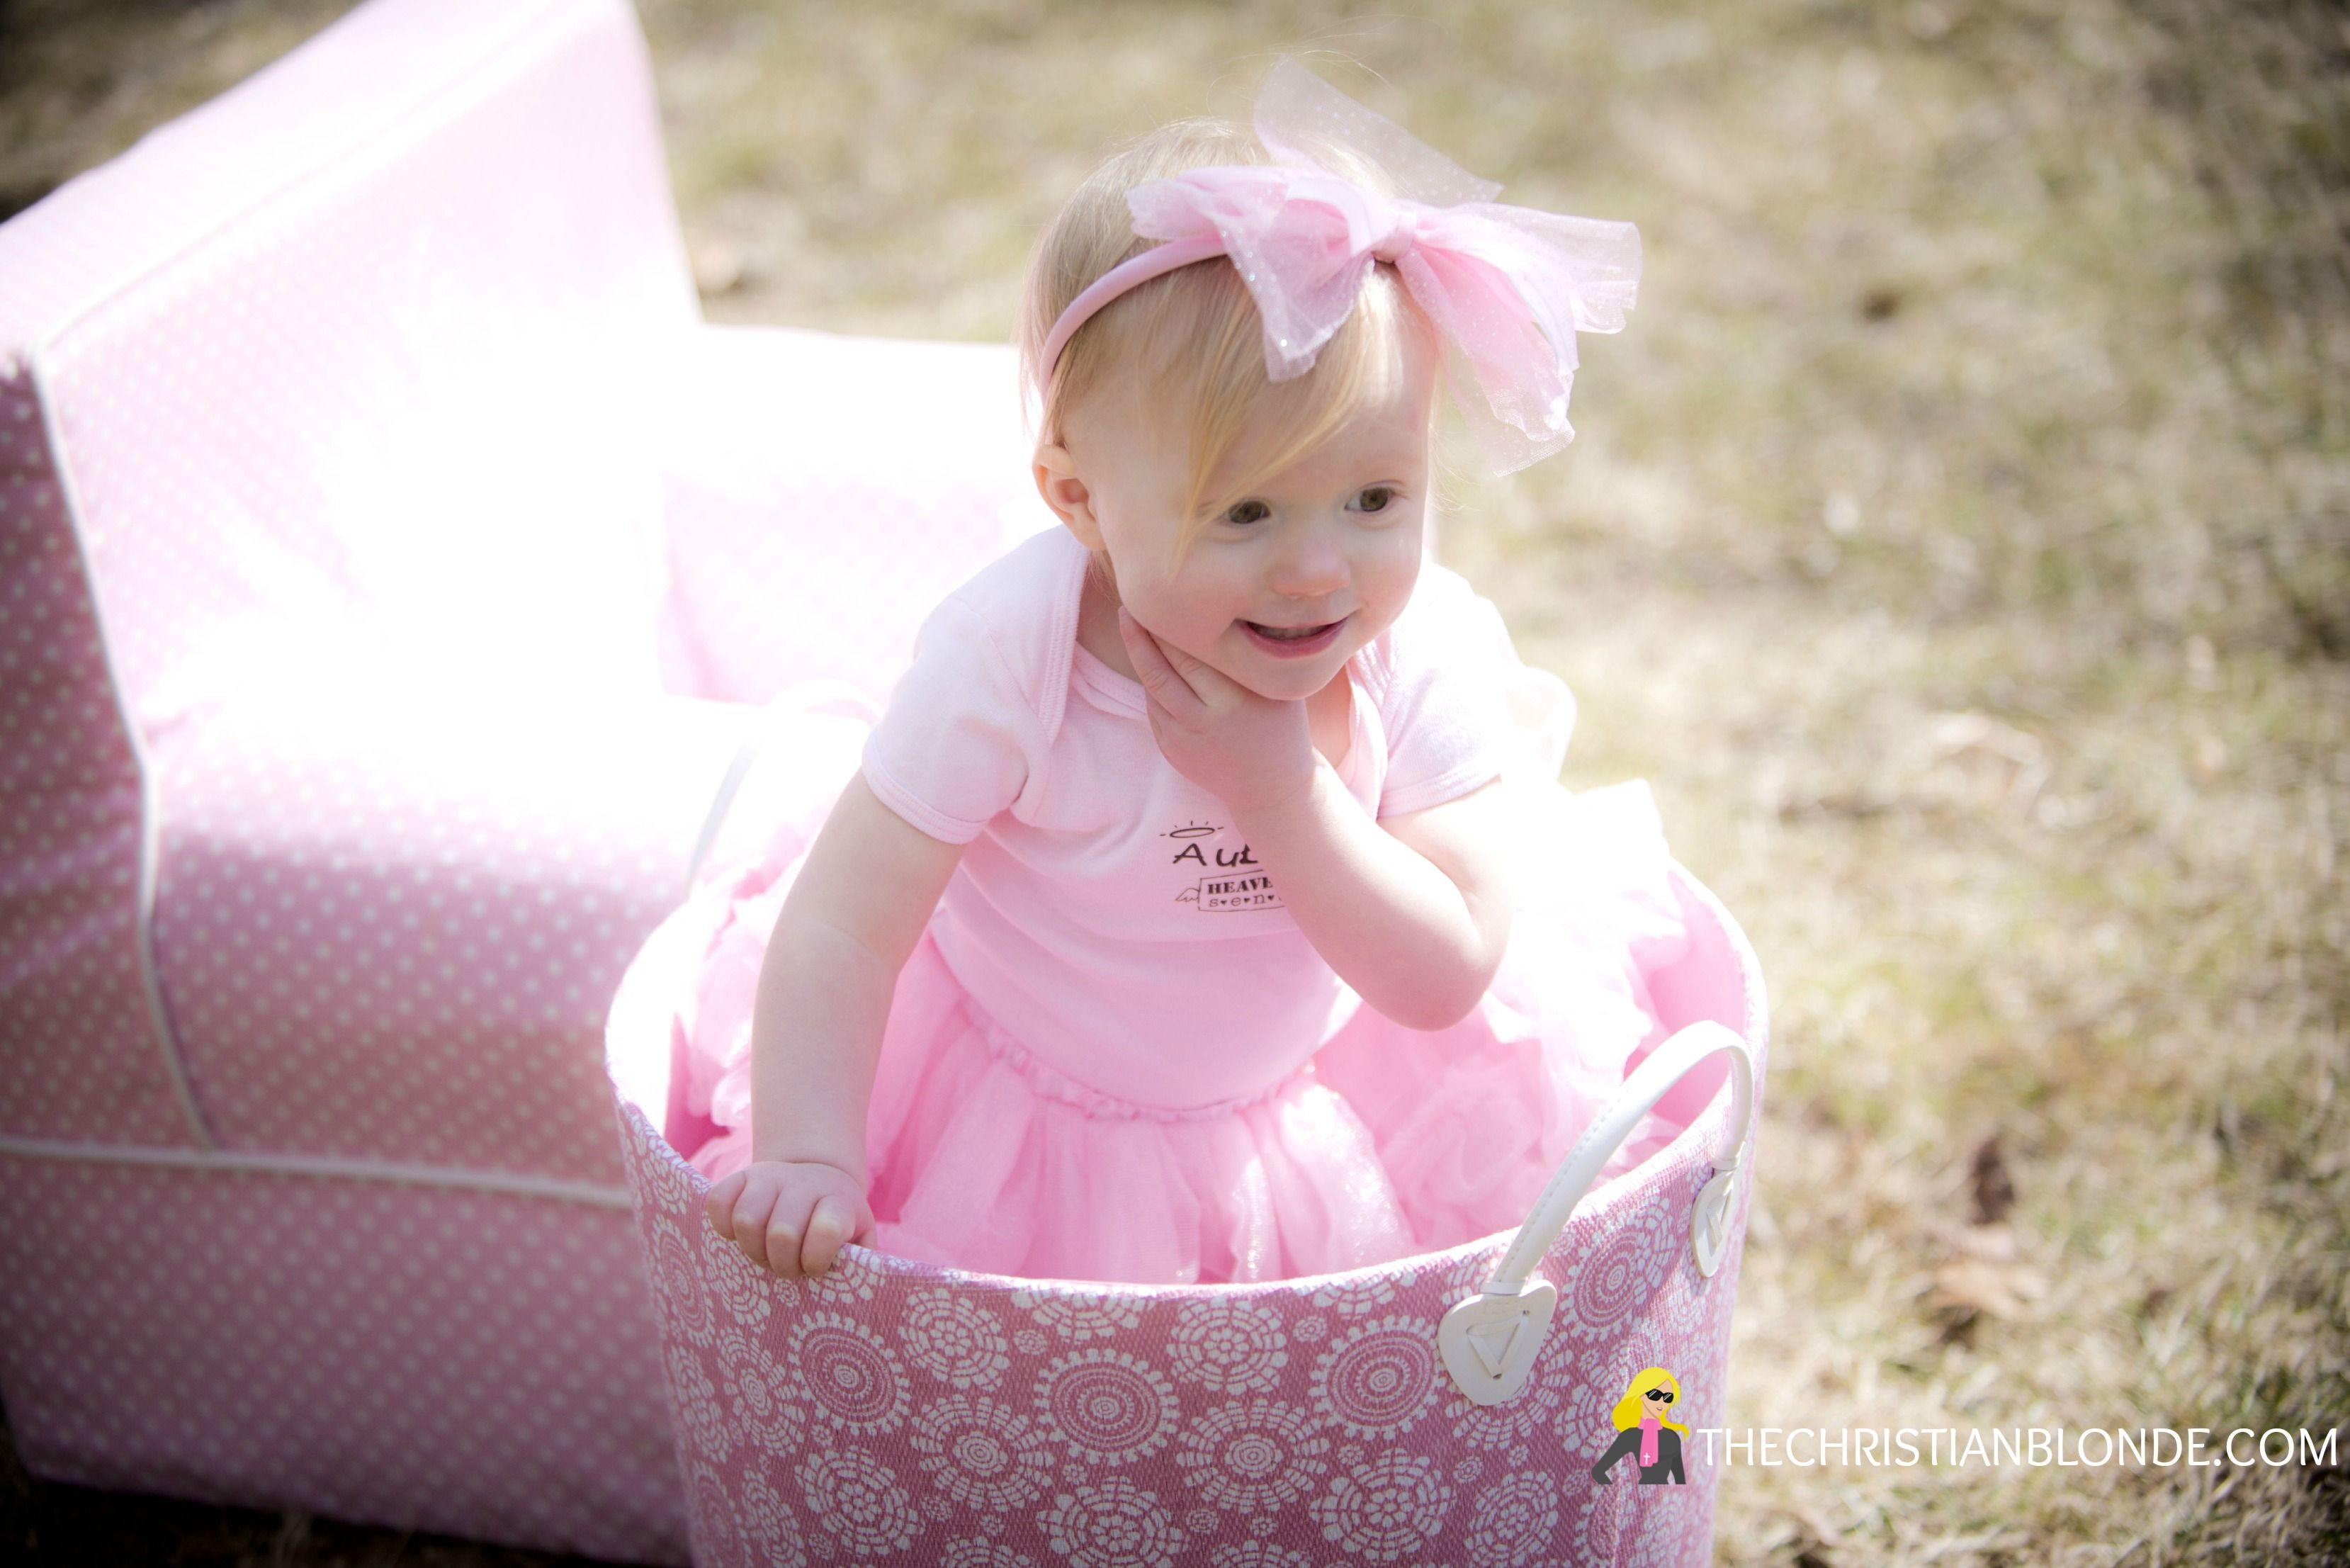 Photoshoot, Photo Shoot, Bow, Headband, One, First, 18 Months, Pink ...